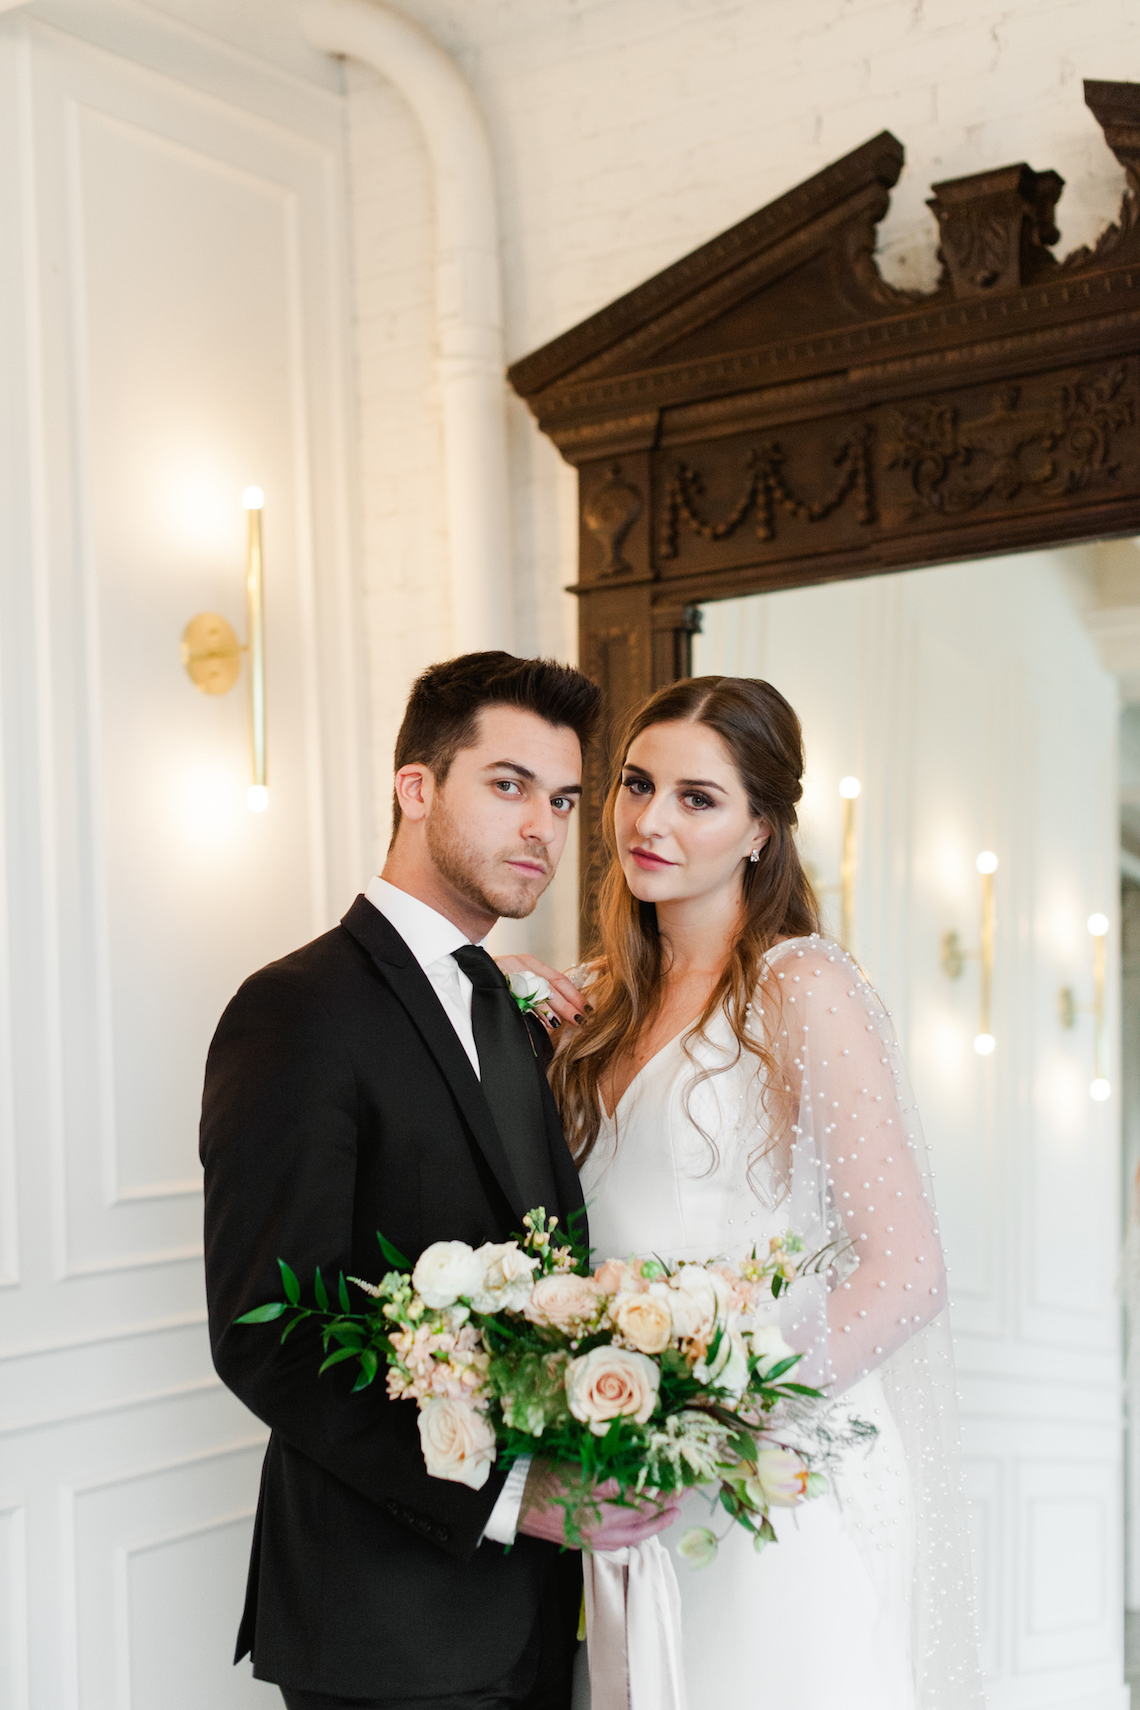 Modern Marble Wedding Inspiration With A Pearl Bridal Cape – Roots of Life Photography 53